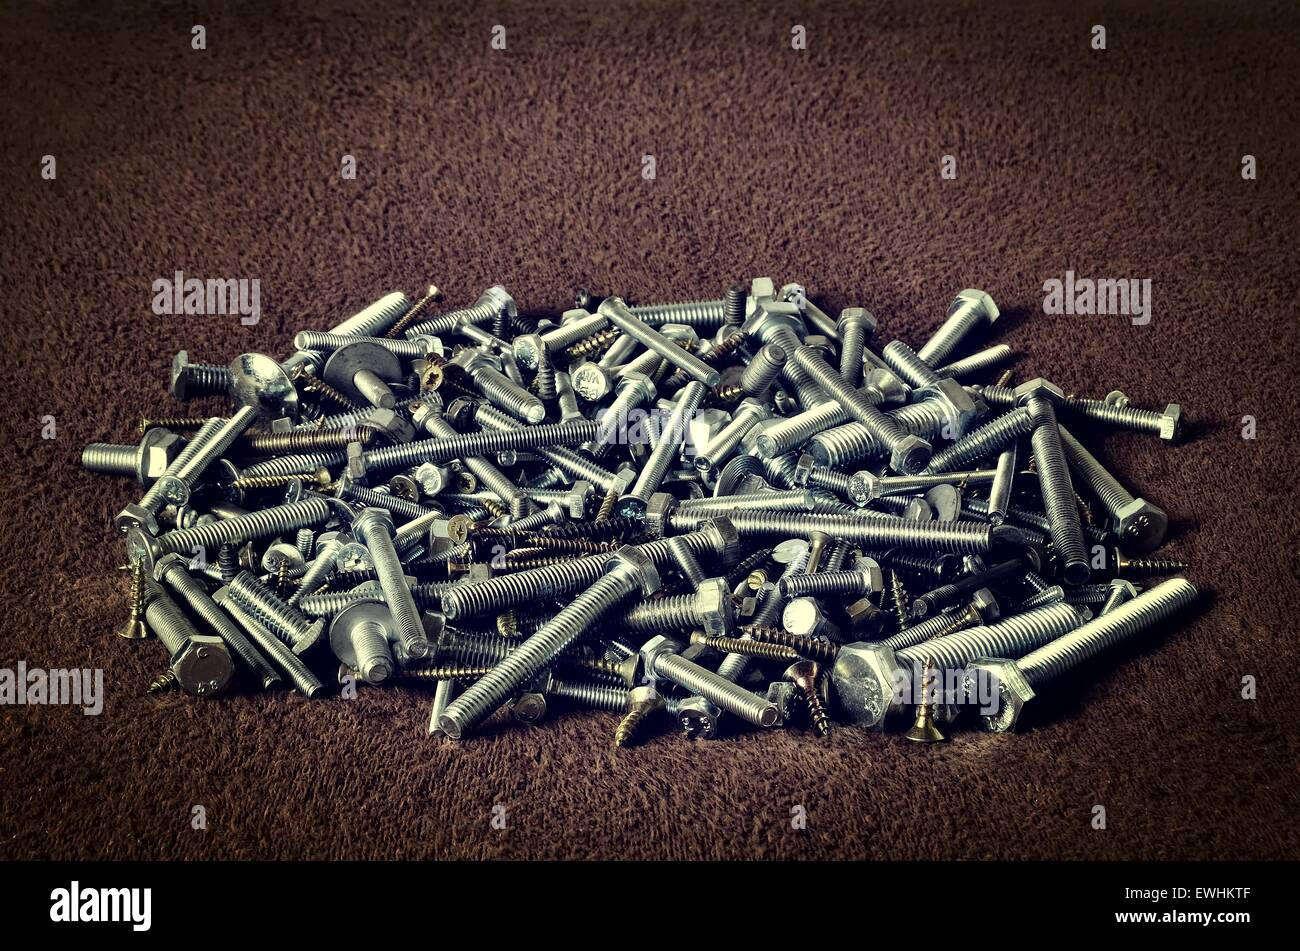 Group of screws. Bolts, nuts, screws in a pile on dark background. Stock Photo